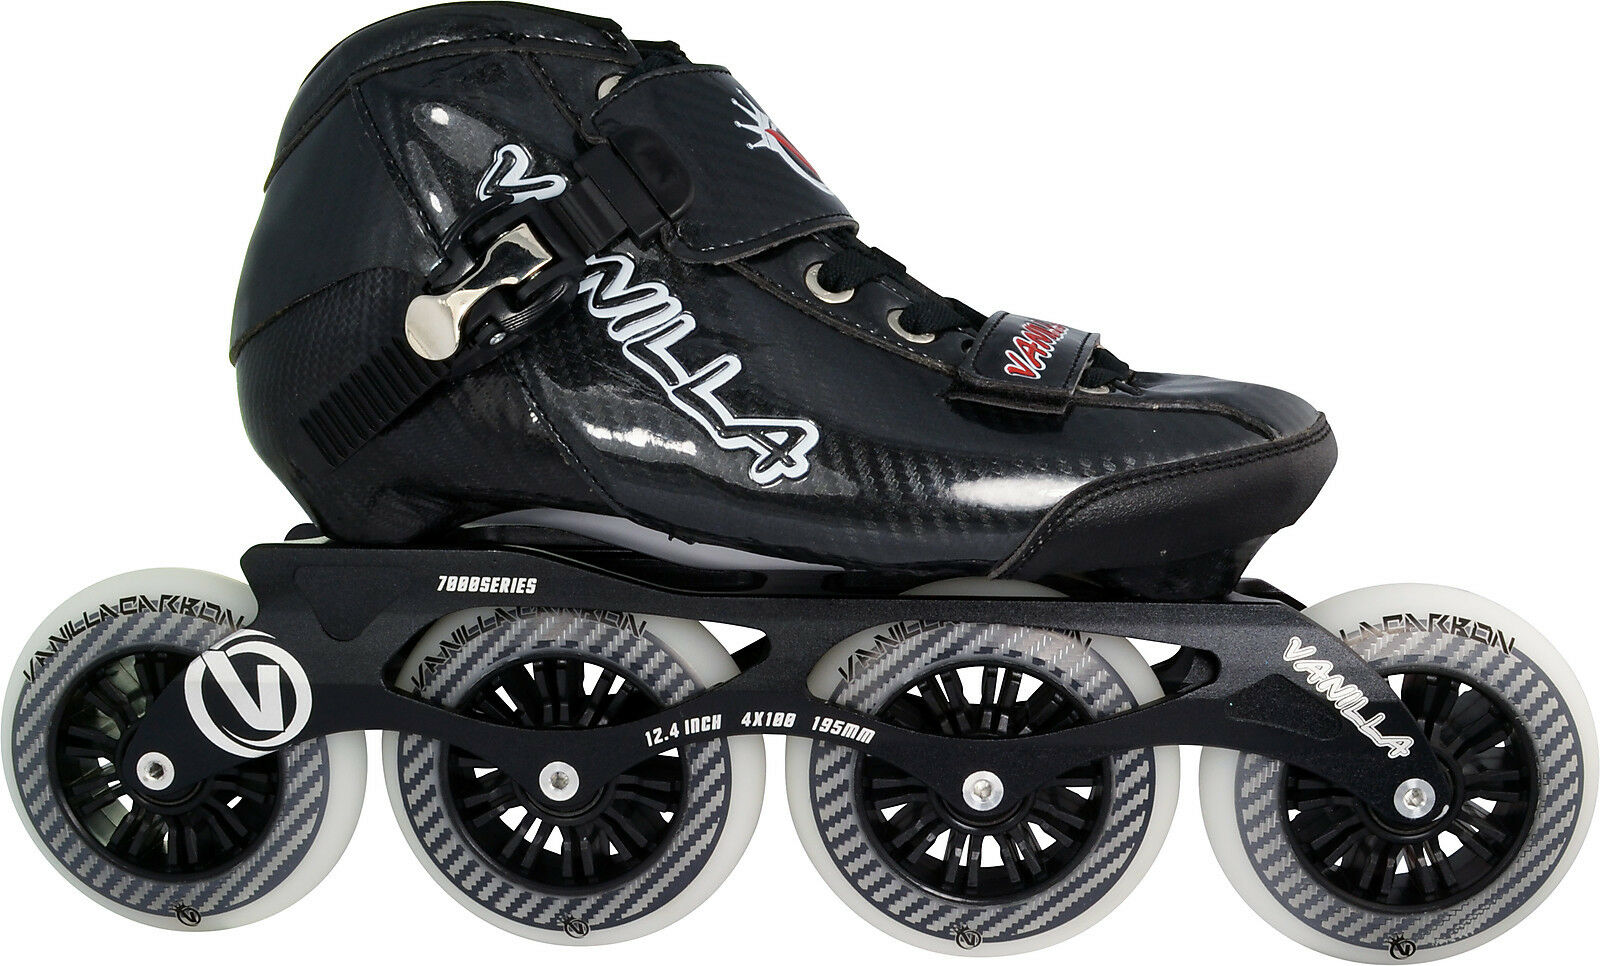 Noir Vanilla Carbone Inline 3X100,4 Vitesse Patins - 3X100,4 Inline X 100mm Roues Taille 1-13 0444a8